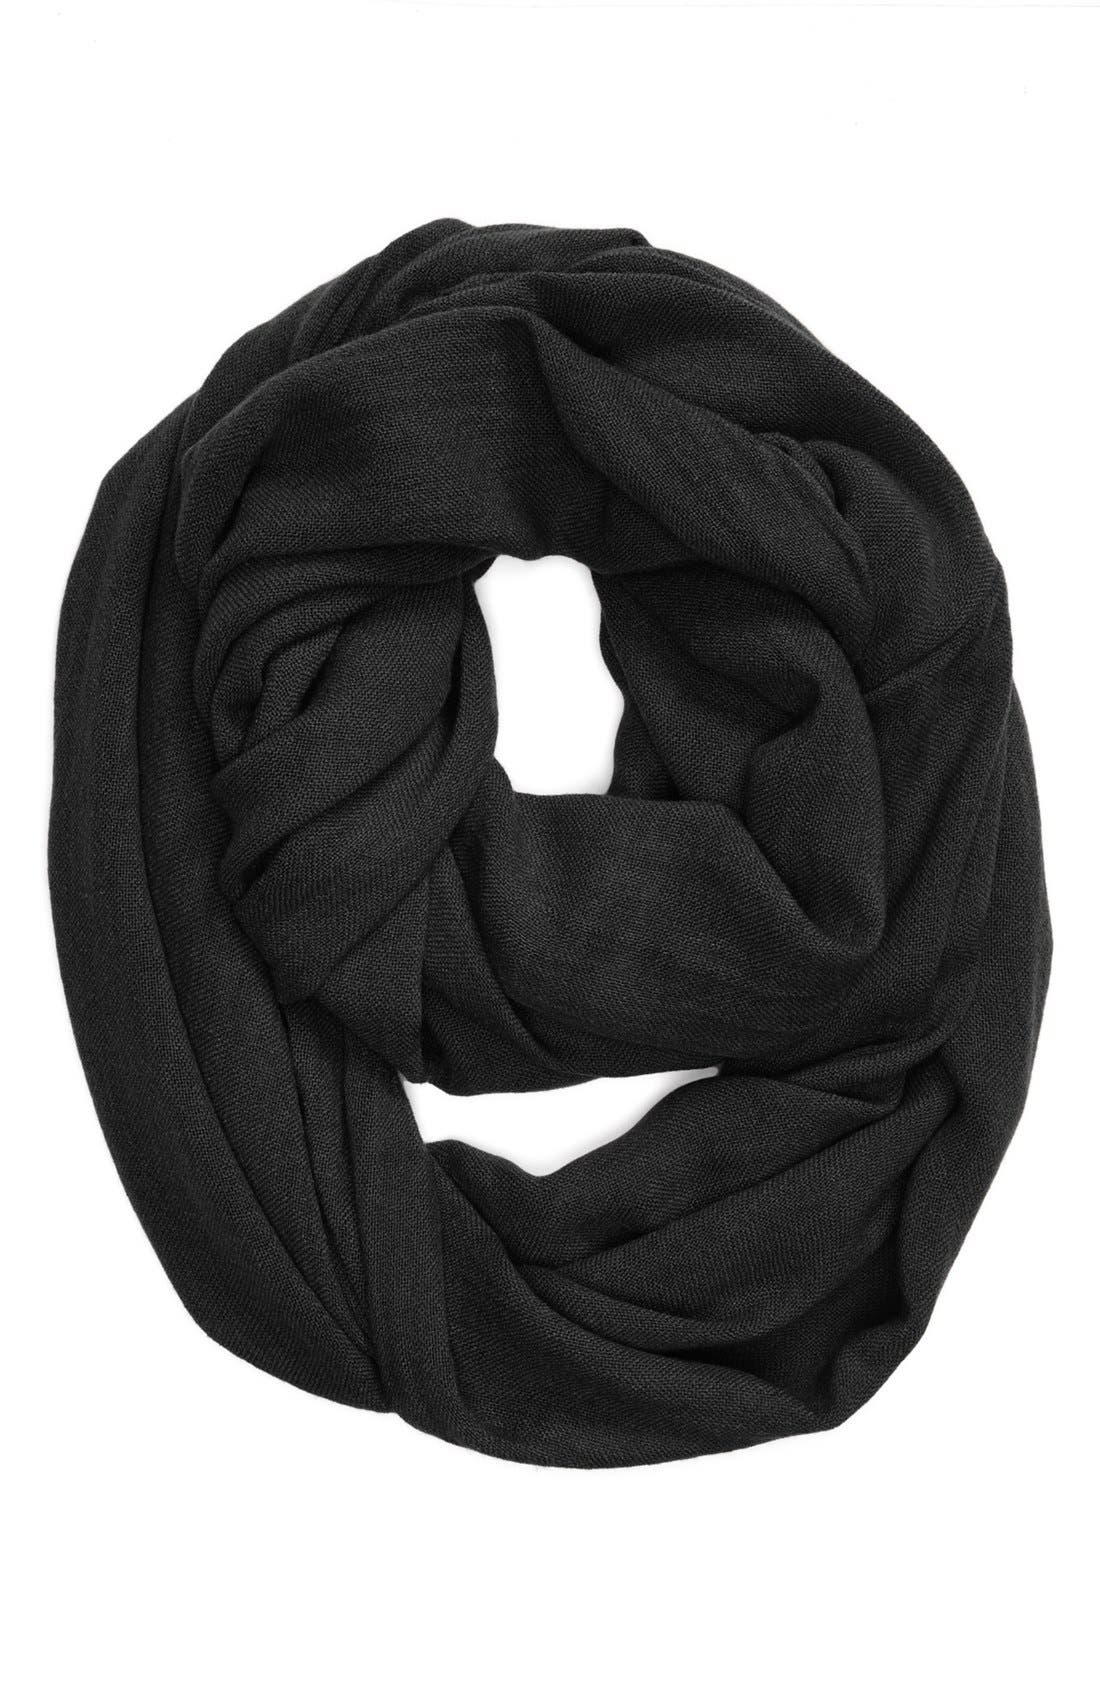 Main Image - Accessory Street Infinity Scarf